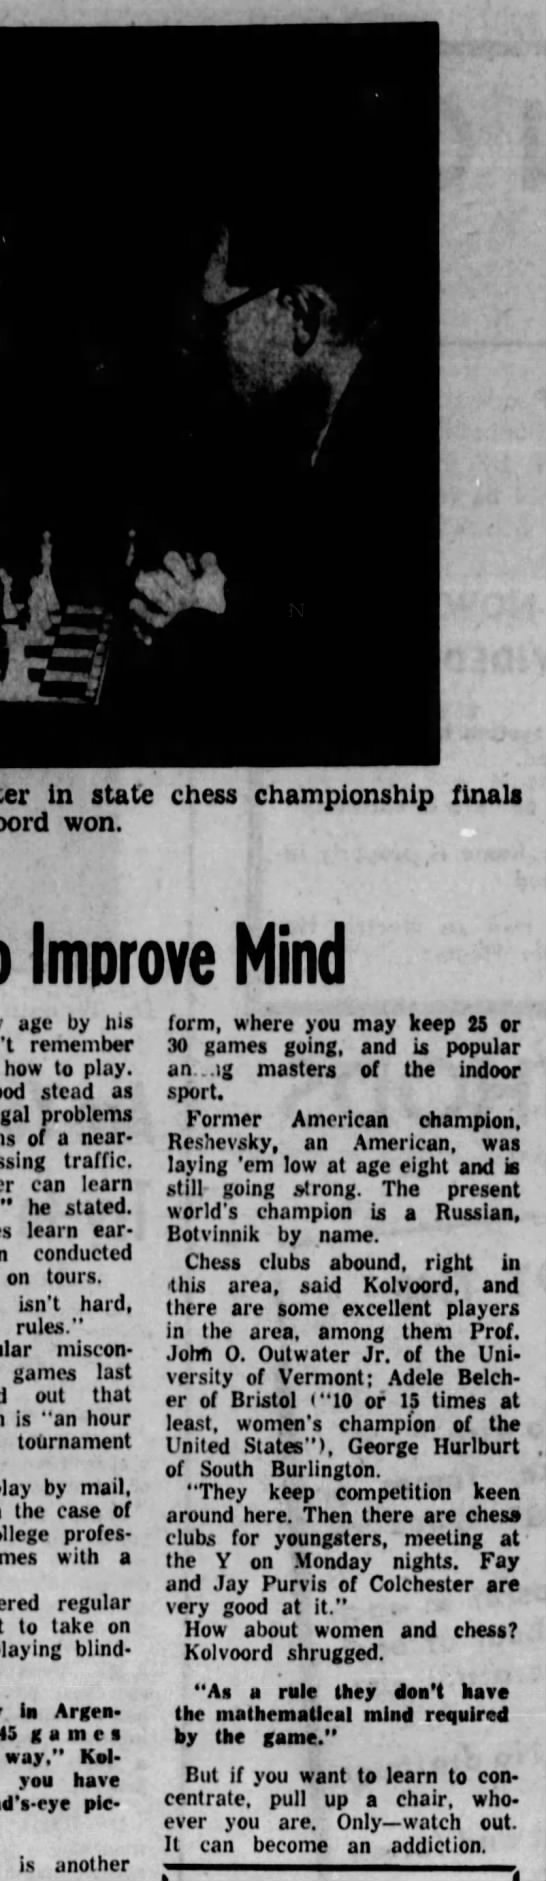 Chess Is Great Method to Improve Mind By Elizabeth Kirkness -